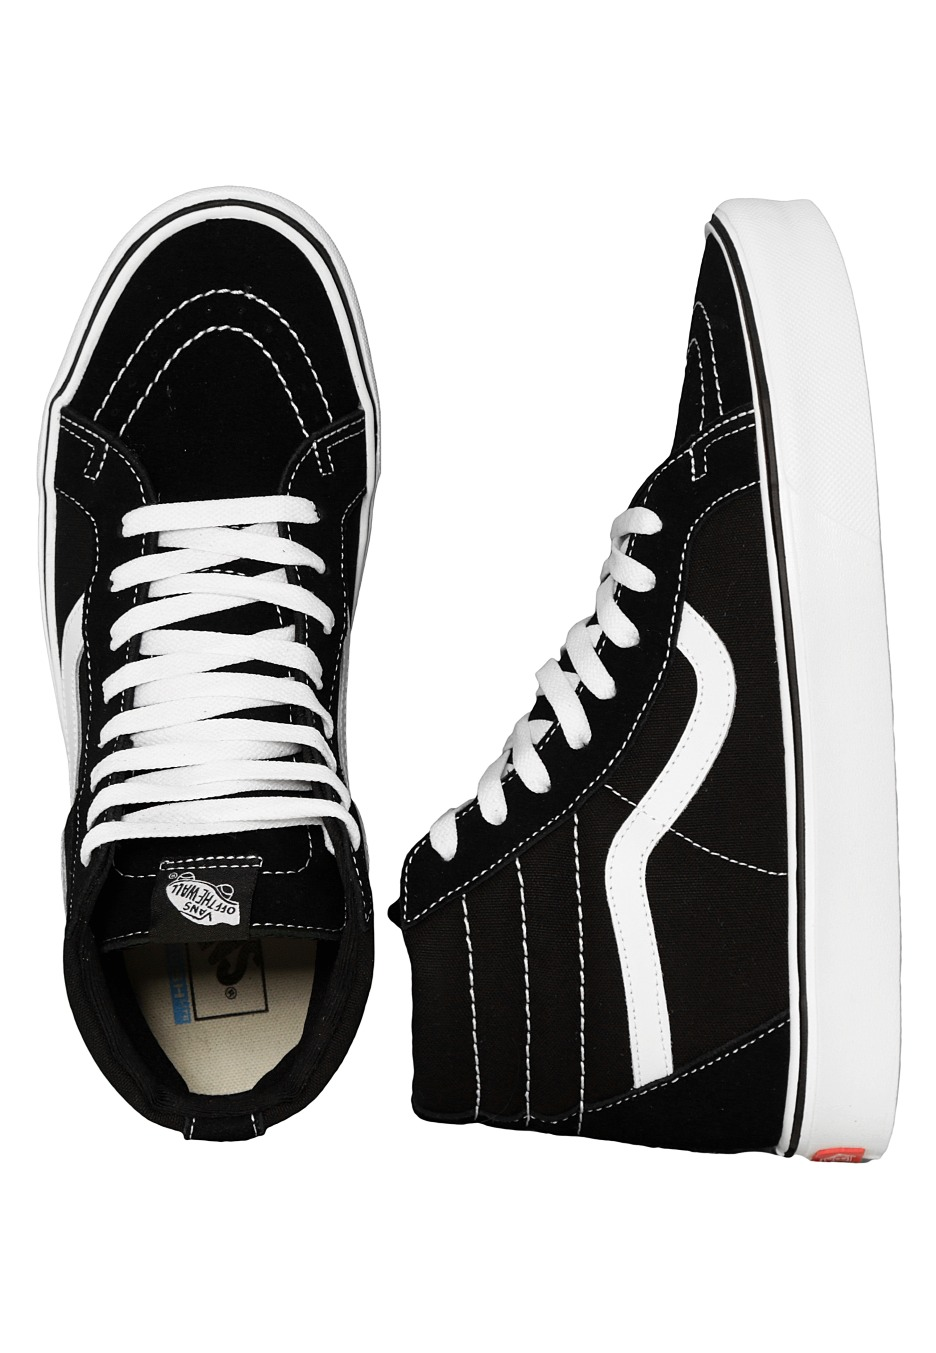 16389d58fe Vans - Sk8-Hi Lite + Suede/Canvas Black/White - Girl Shoes - Impericon.com  UK